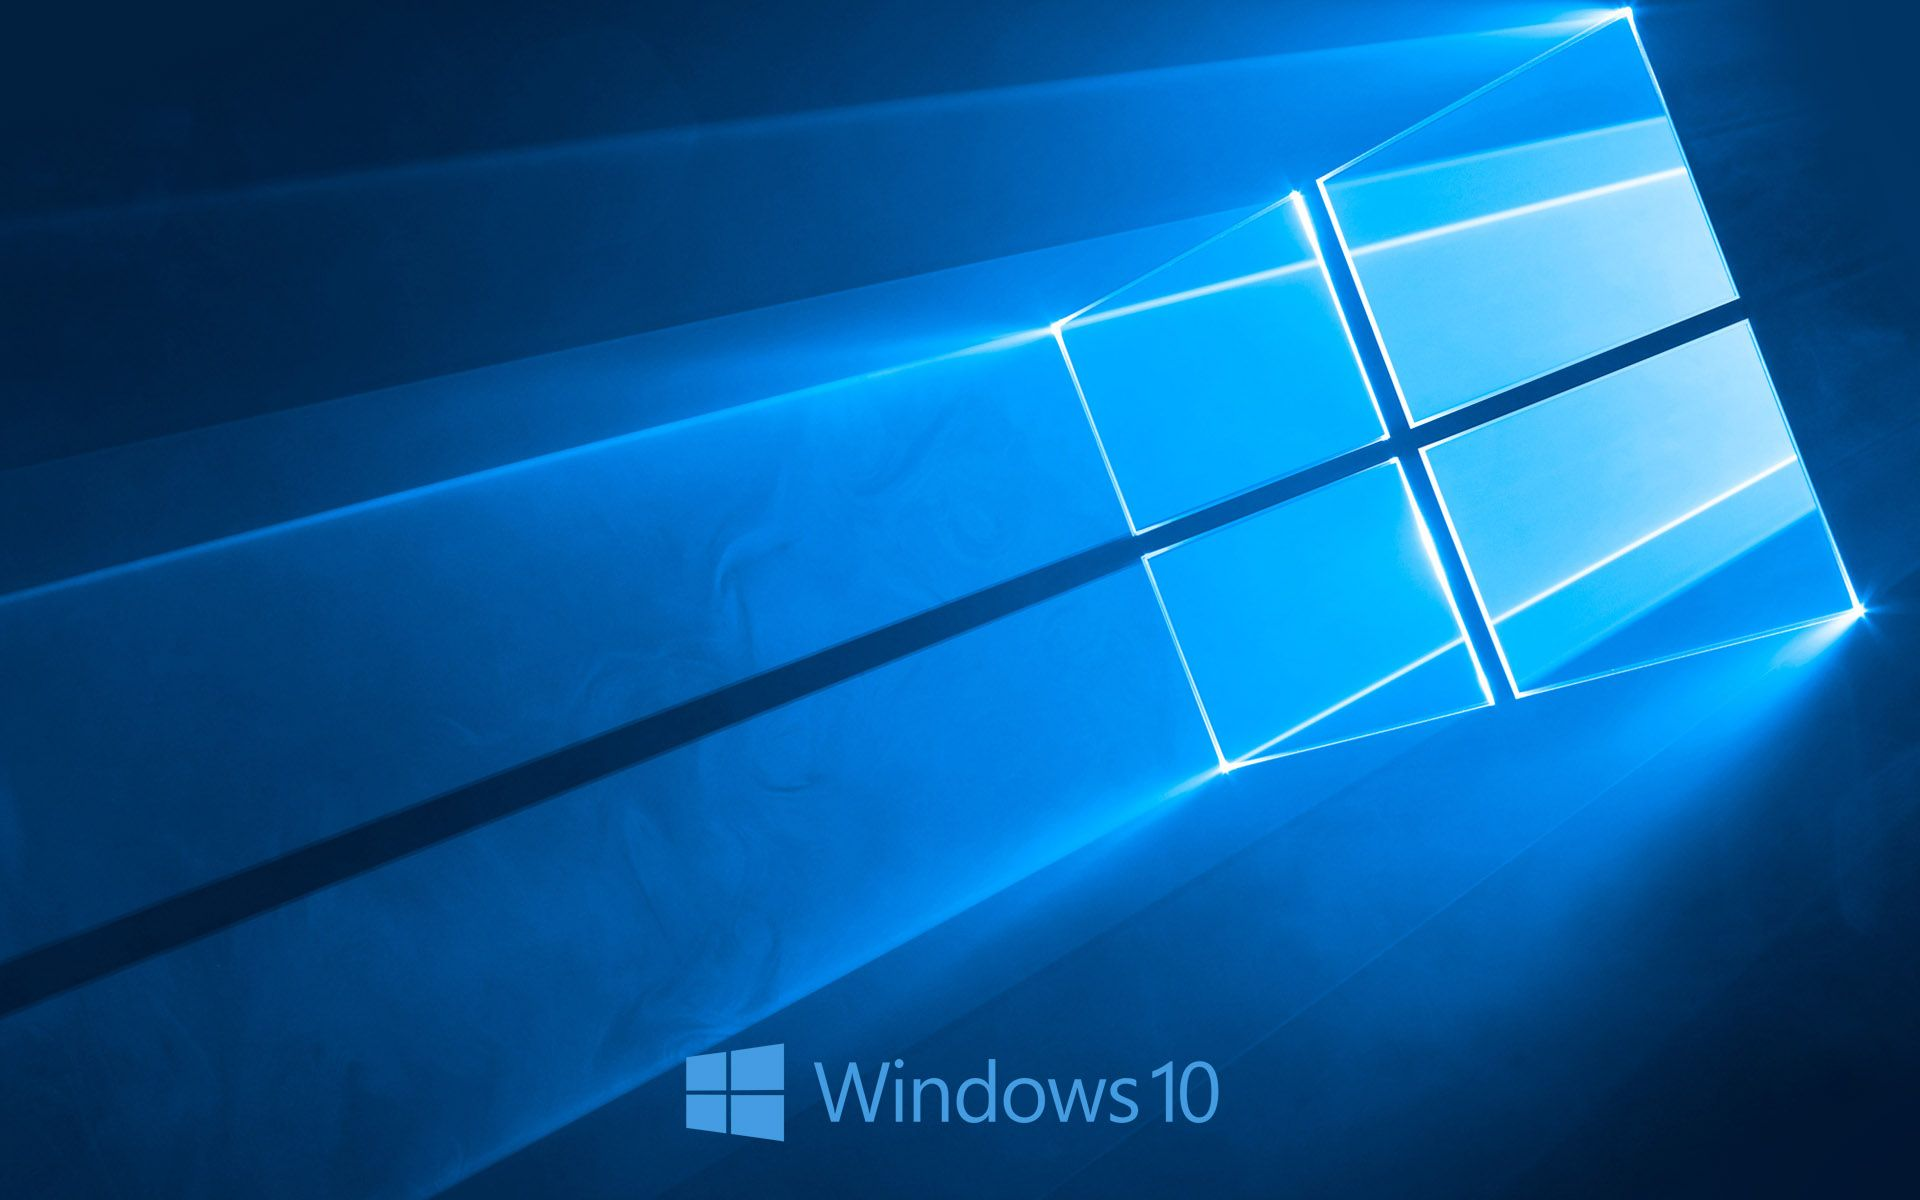 How To Change The Default Pdf Reader In Windows 10 Https Www Technobezz Com How To Change The Default Pdf Reader In W Windows 10 Microsoft Windows Microsoft